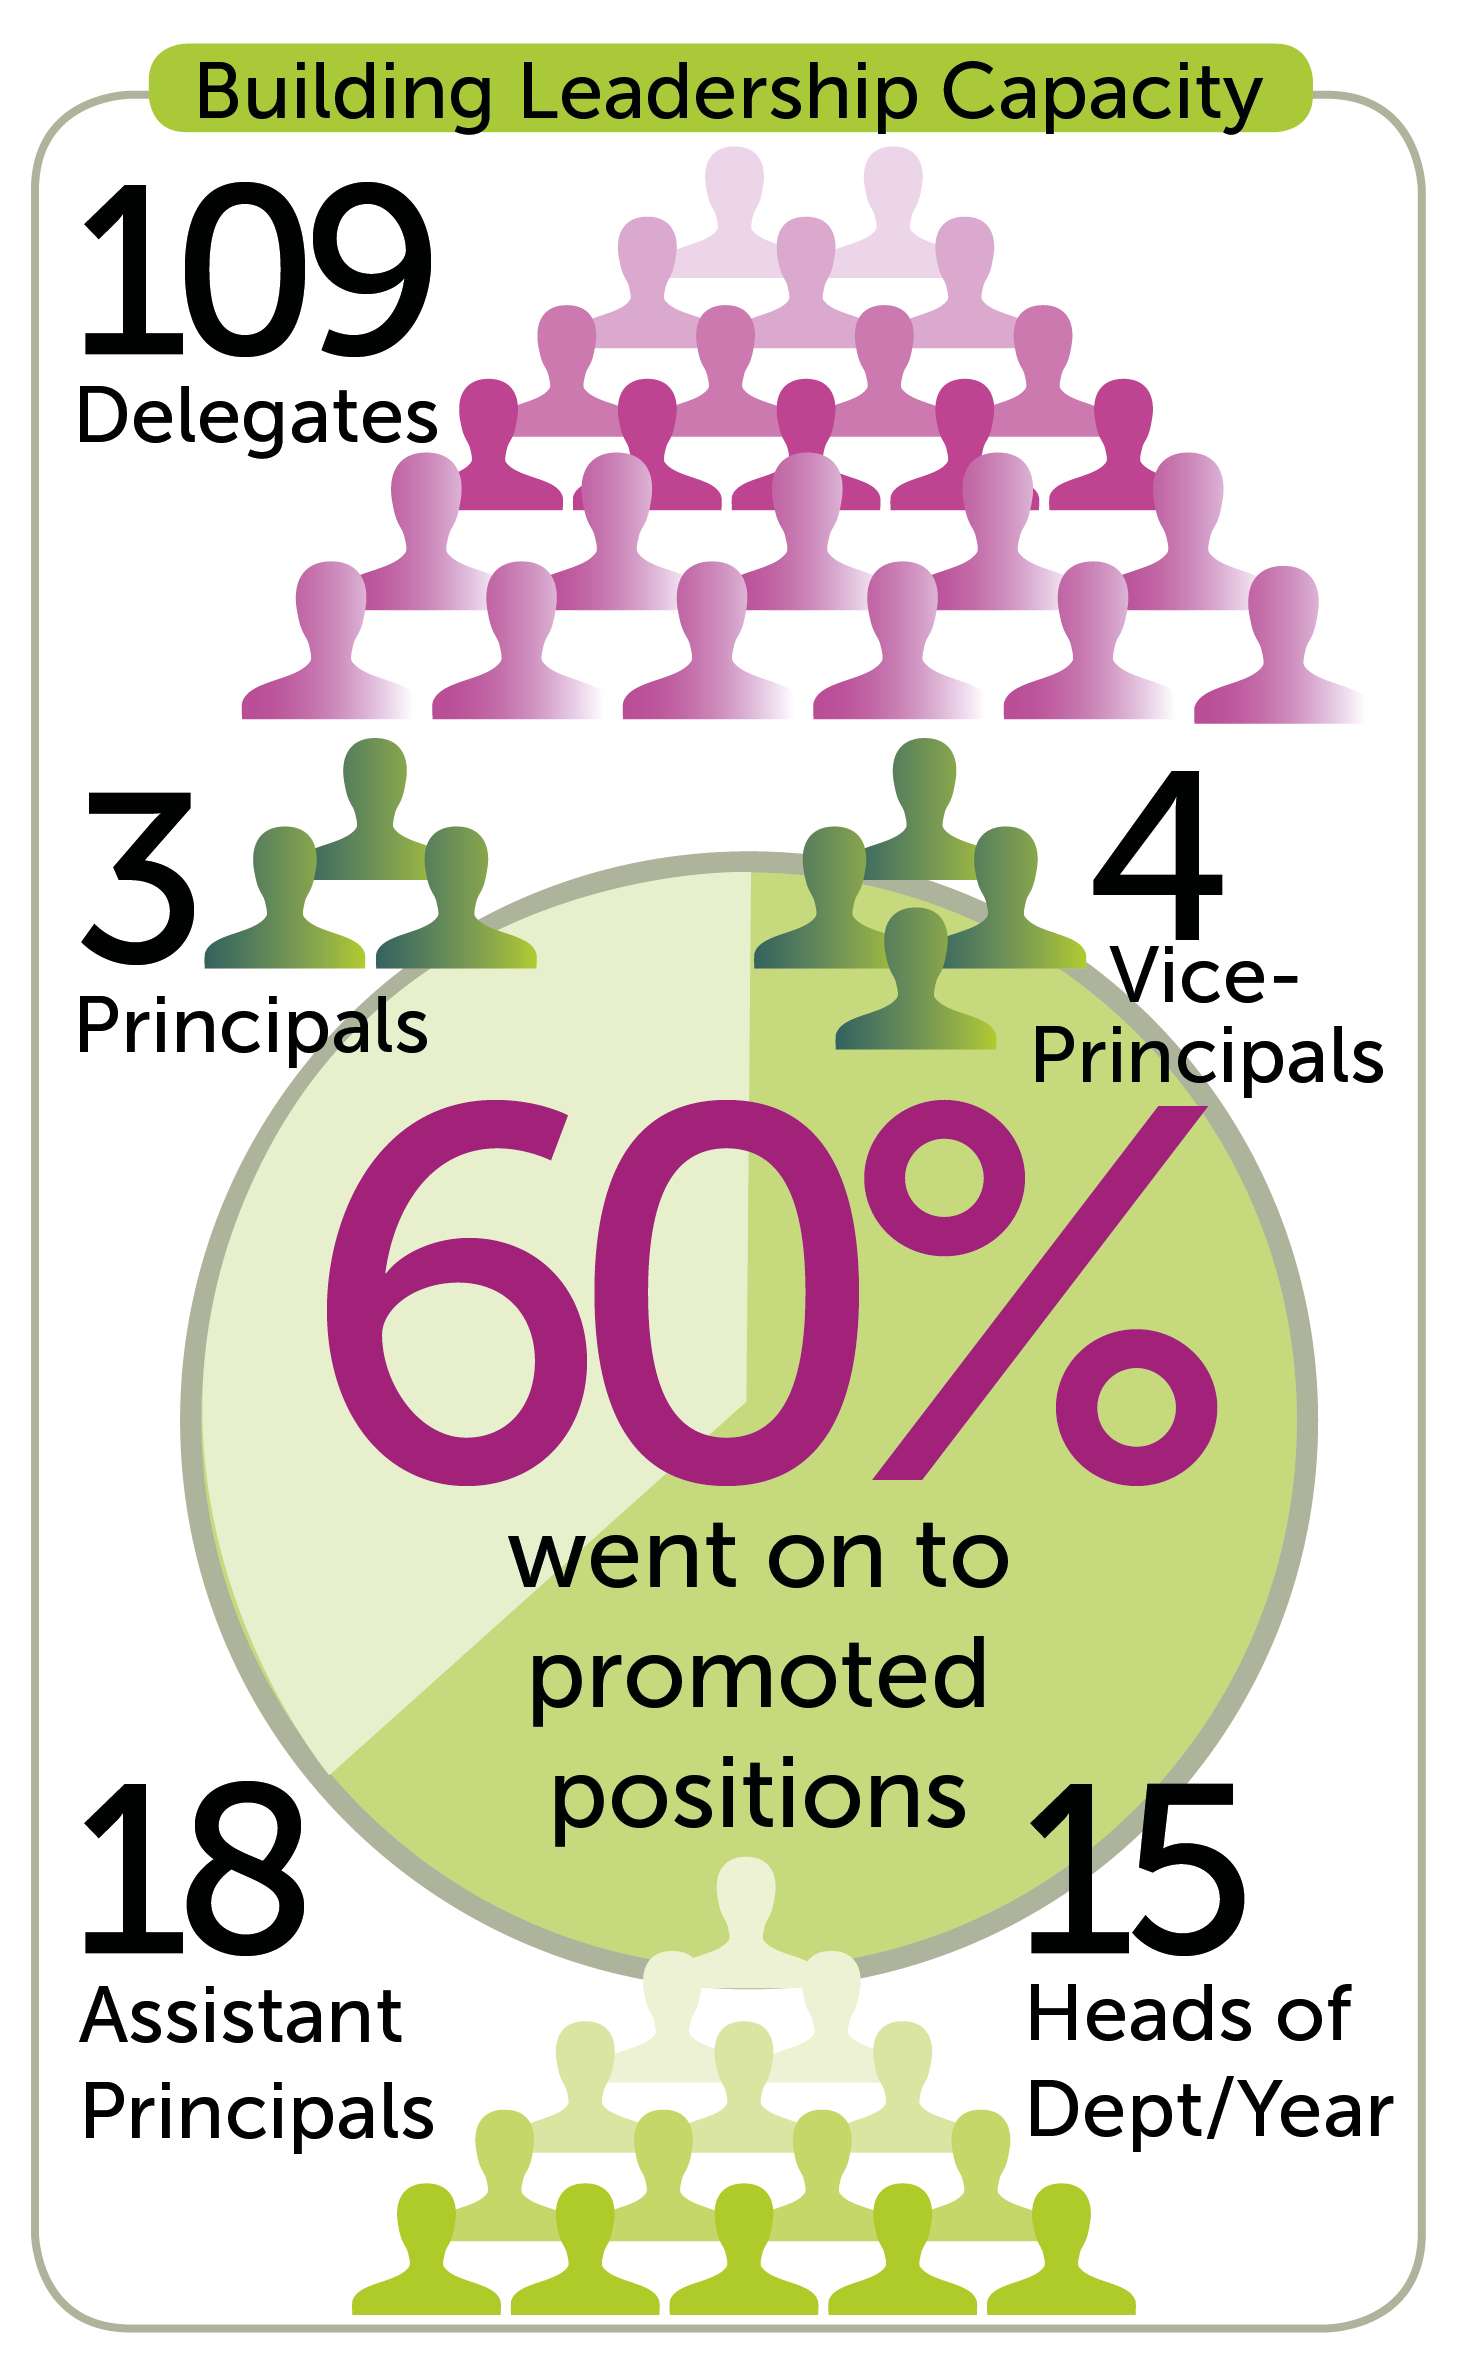 Leadership-hayes-graphic